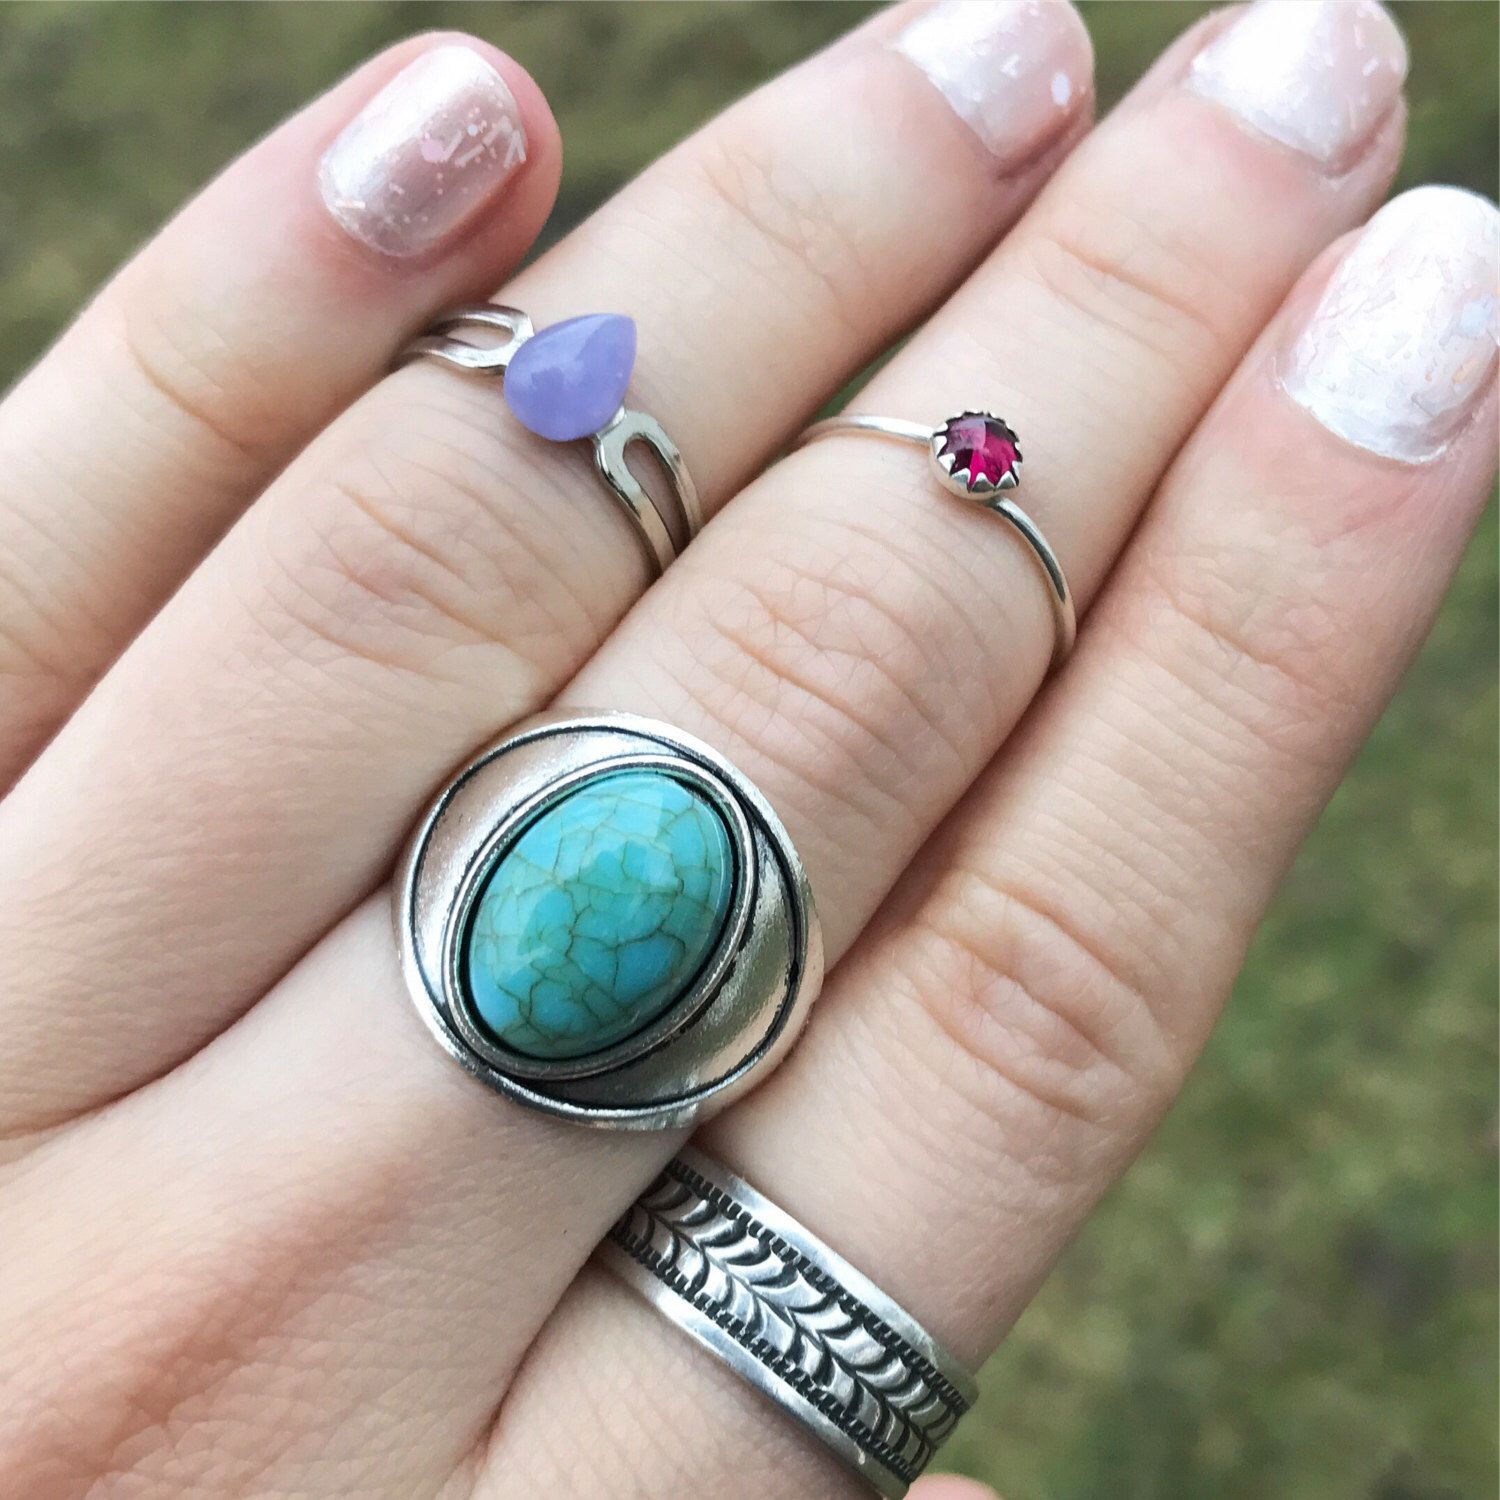 Faux Turquoise Ring / Size 7 Antique Silver Boho Bohemian Statement Gypsy Costume Summer Music Festival Style Free Spirit Chunky Oval Grunge by lydiasvintage on Etsy https://www.etsy.com/listing/492755166/faux-turquoise-ring-size-7-antique